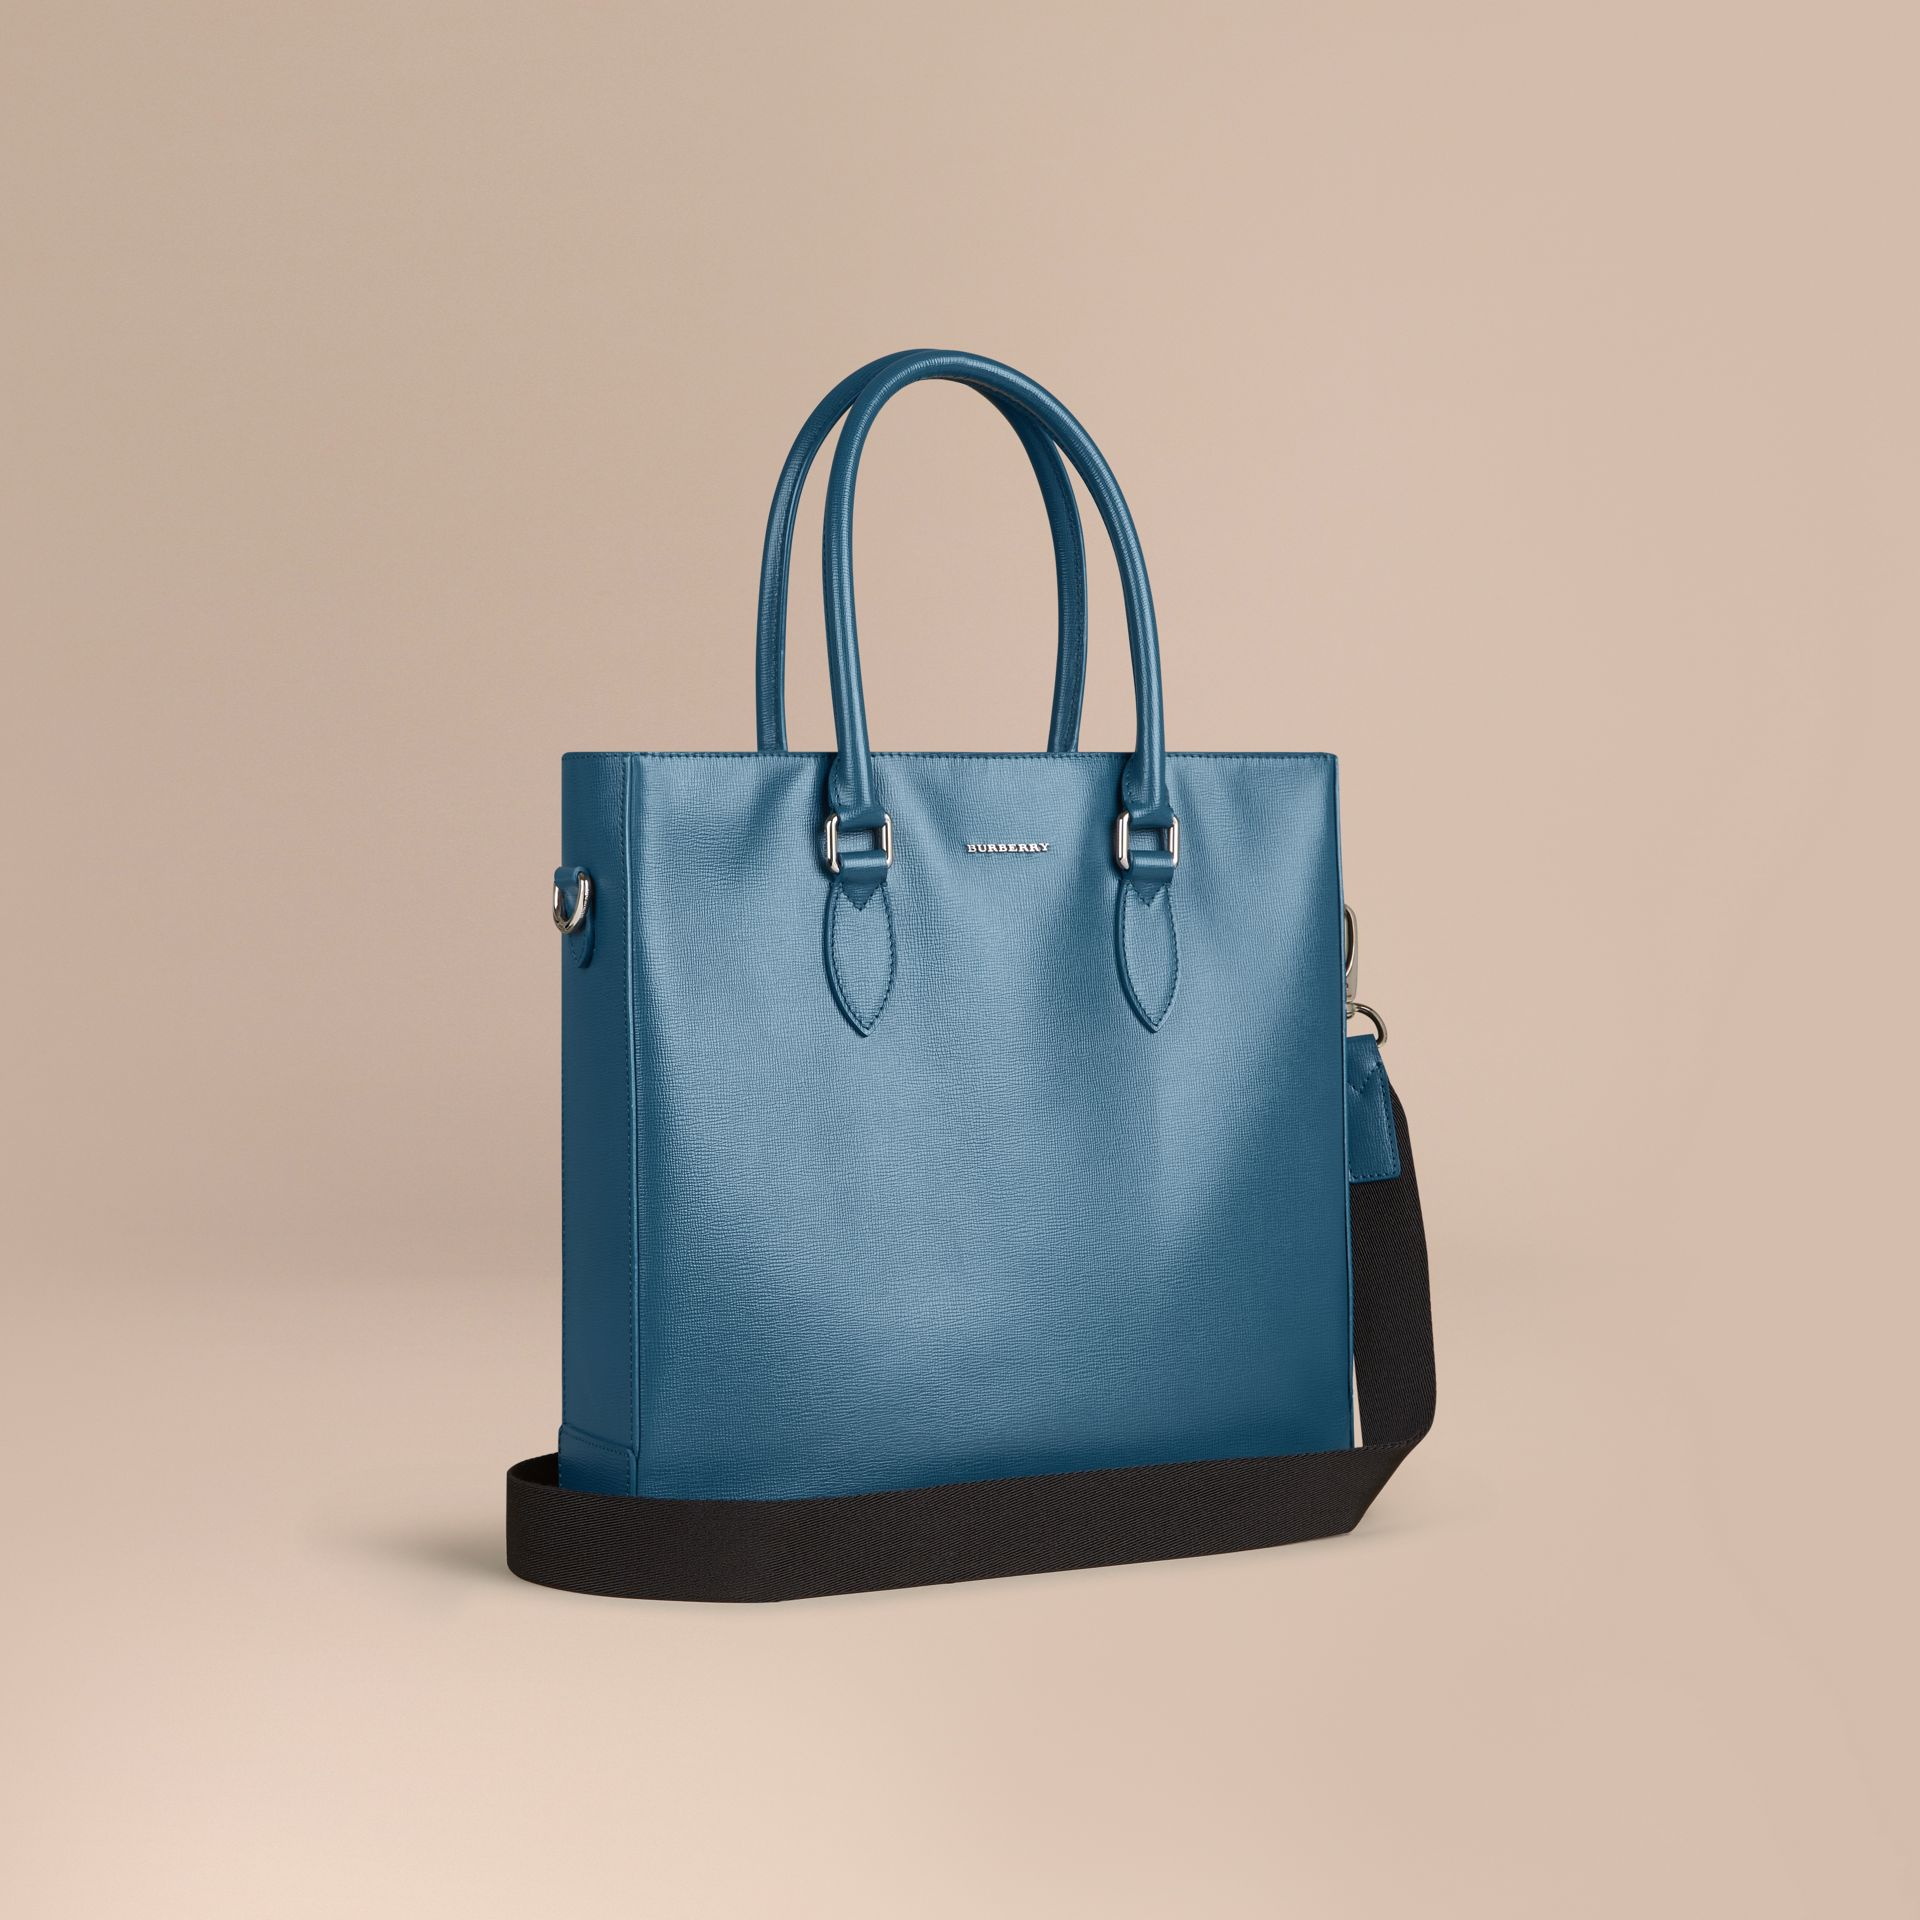 London Leather Tote Bag in Mineral Blue - Men | Burberry - gallery image 1